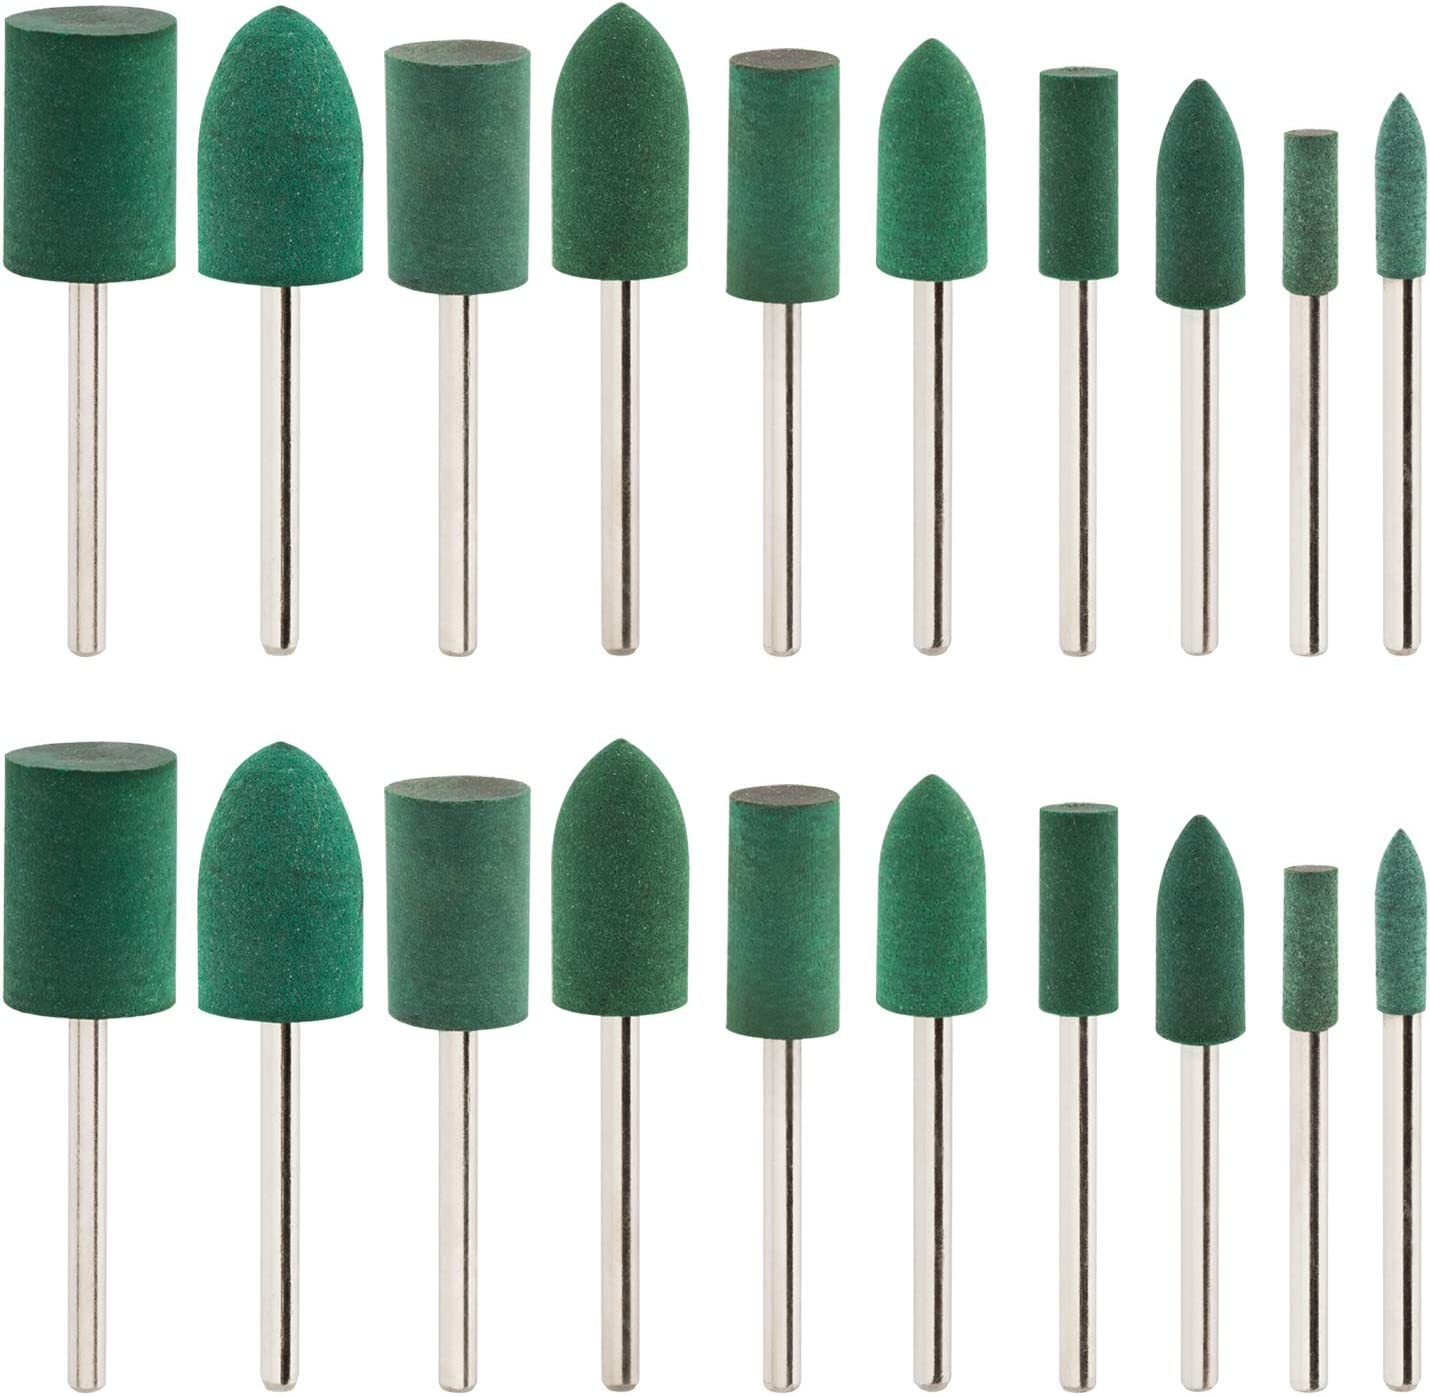 PAGOW 20 pcs Rubber Polishing Bits, 3 mm (1/8 Inch) Shank Cylinder and Bullet Polishing Mounted Points For Dremel Derusting Grinding Buffing Rotary Drills Tools(Green)